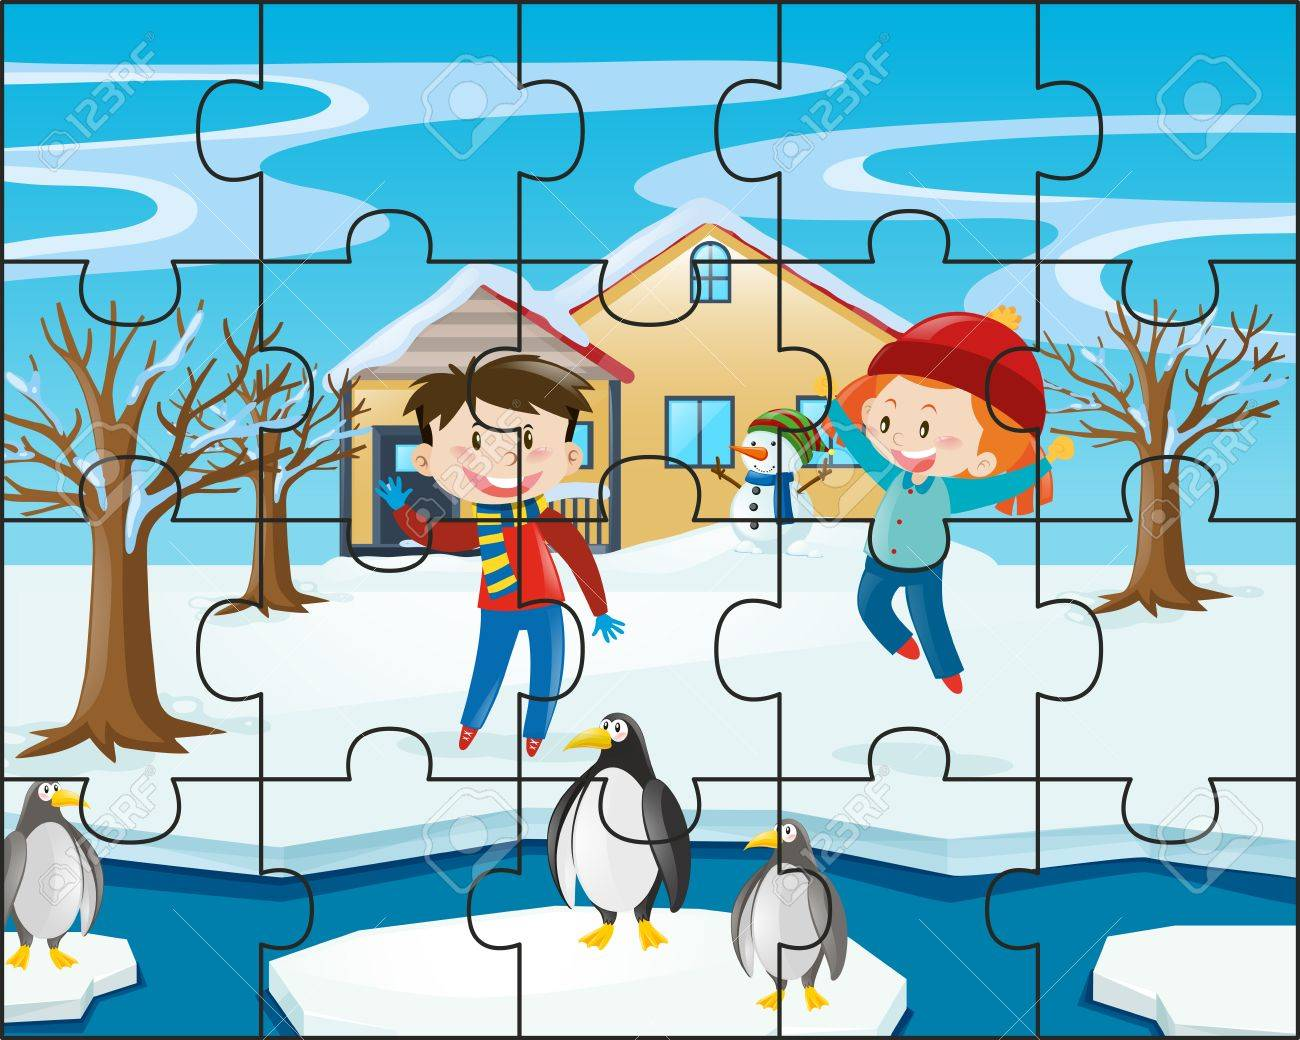 Jigsaw Puzzle Game With Kids In Winter Illustration Stock Vector